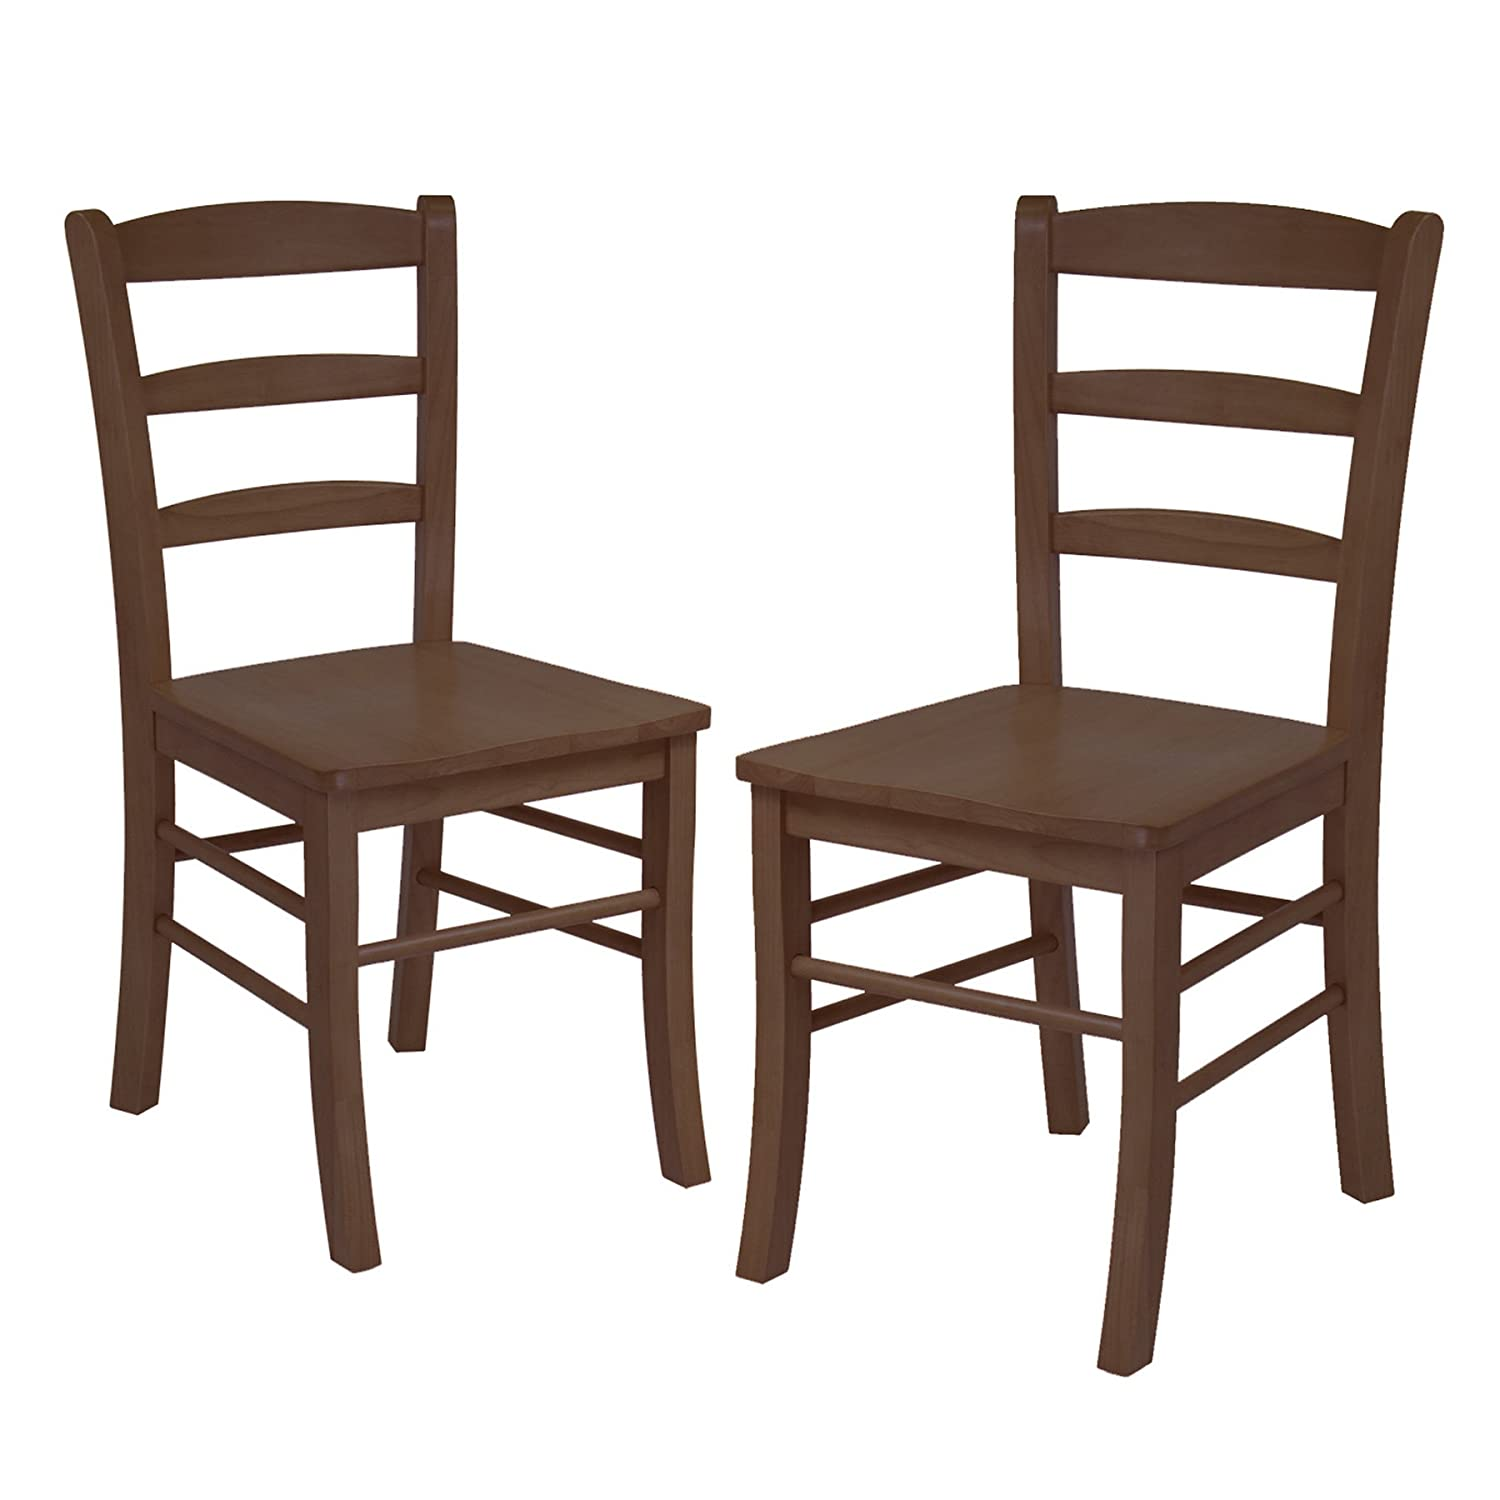 Amazon.com: Winsome Wood Ladder Back Chair, Light Oak, Set Of 2: Kitchen U0026  Dining